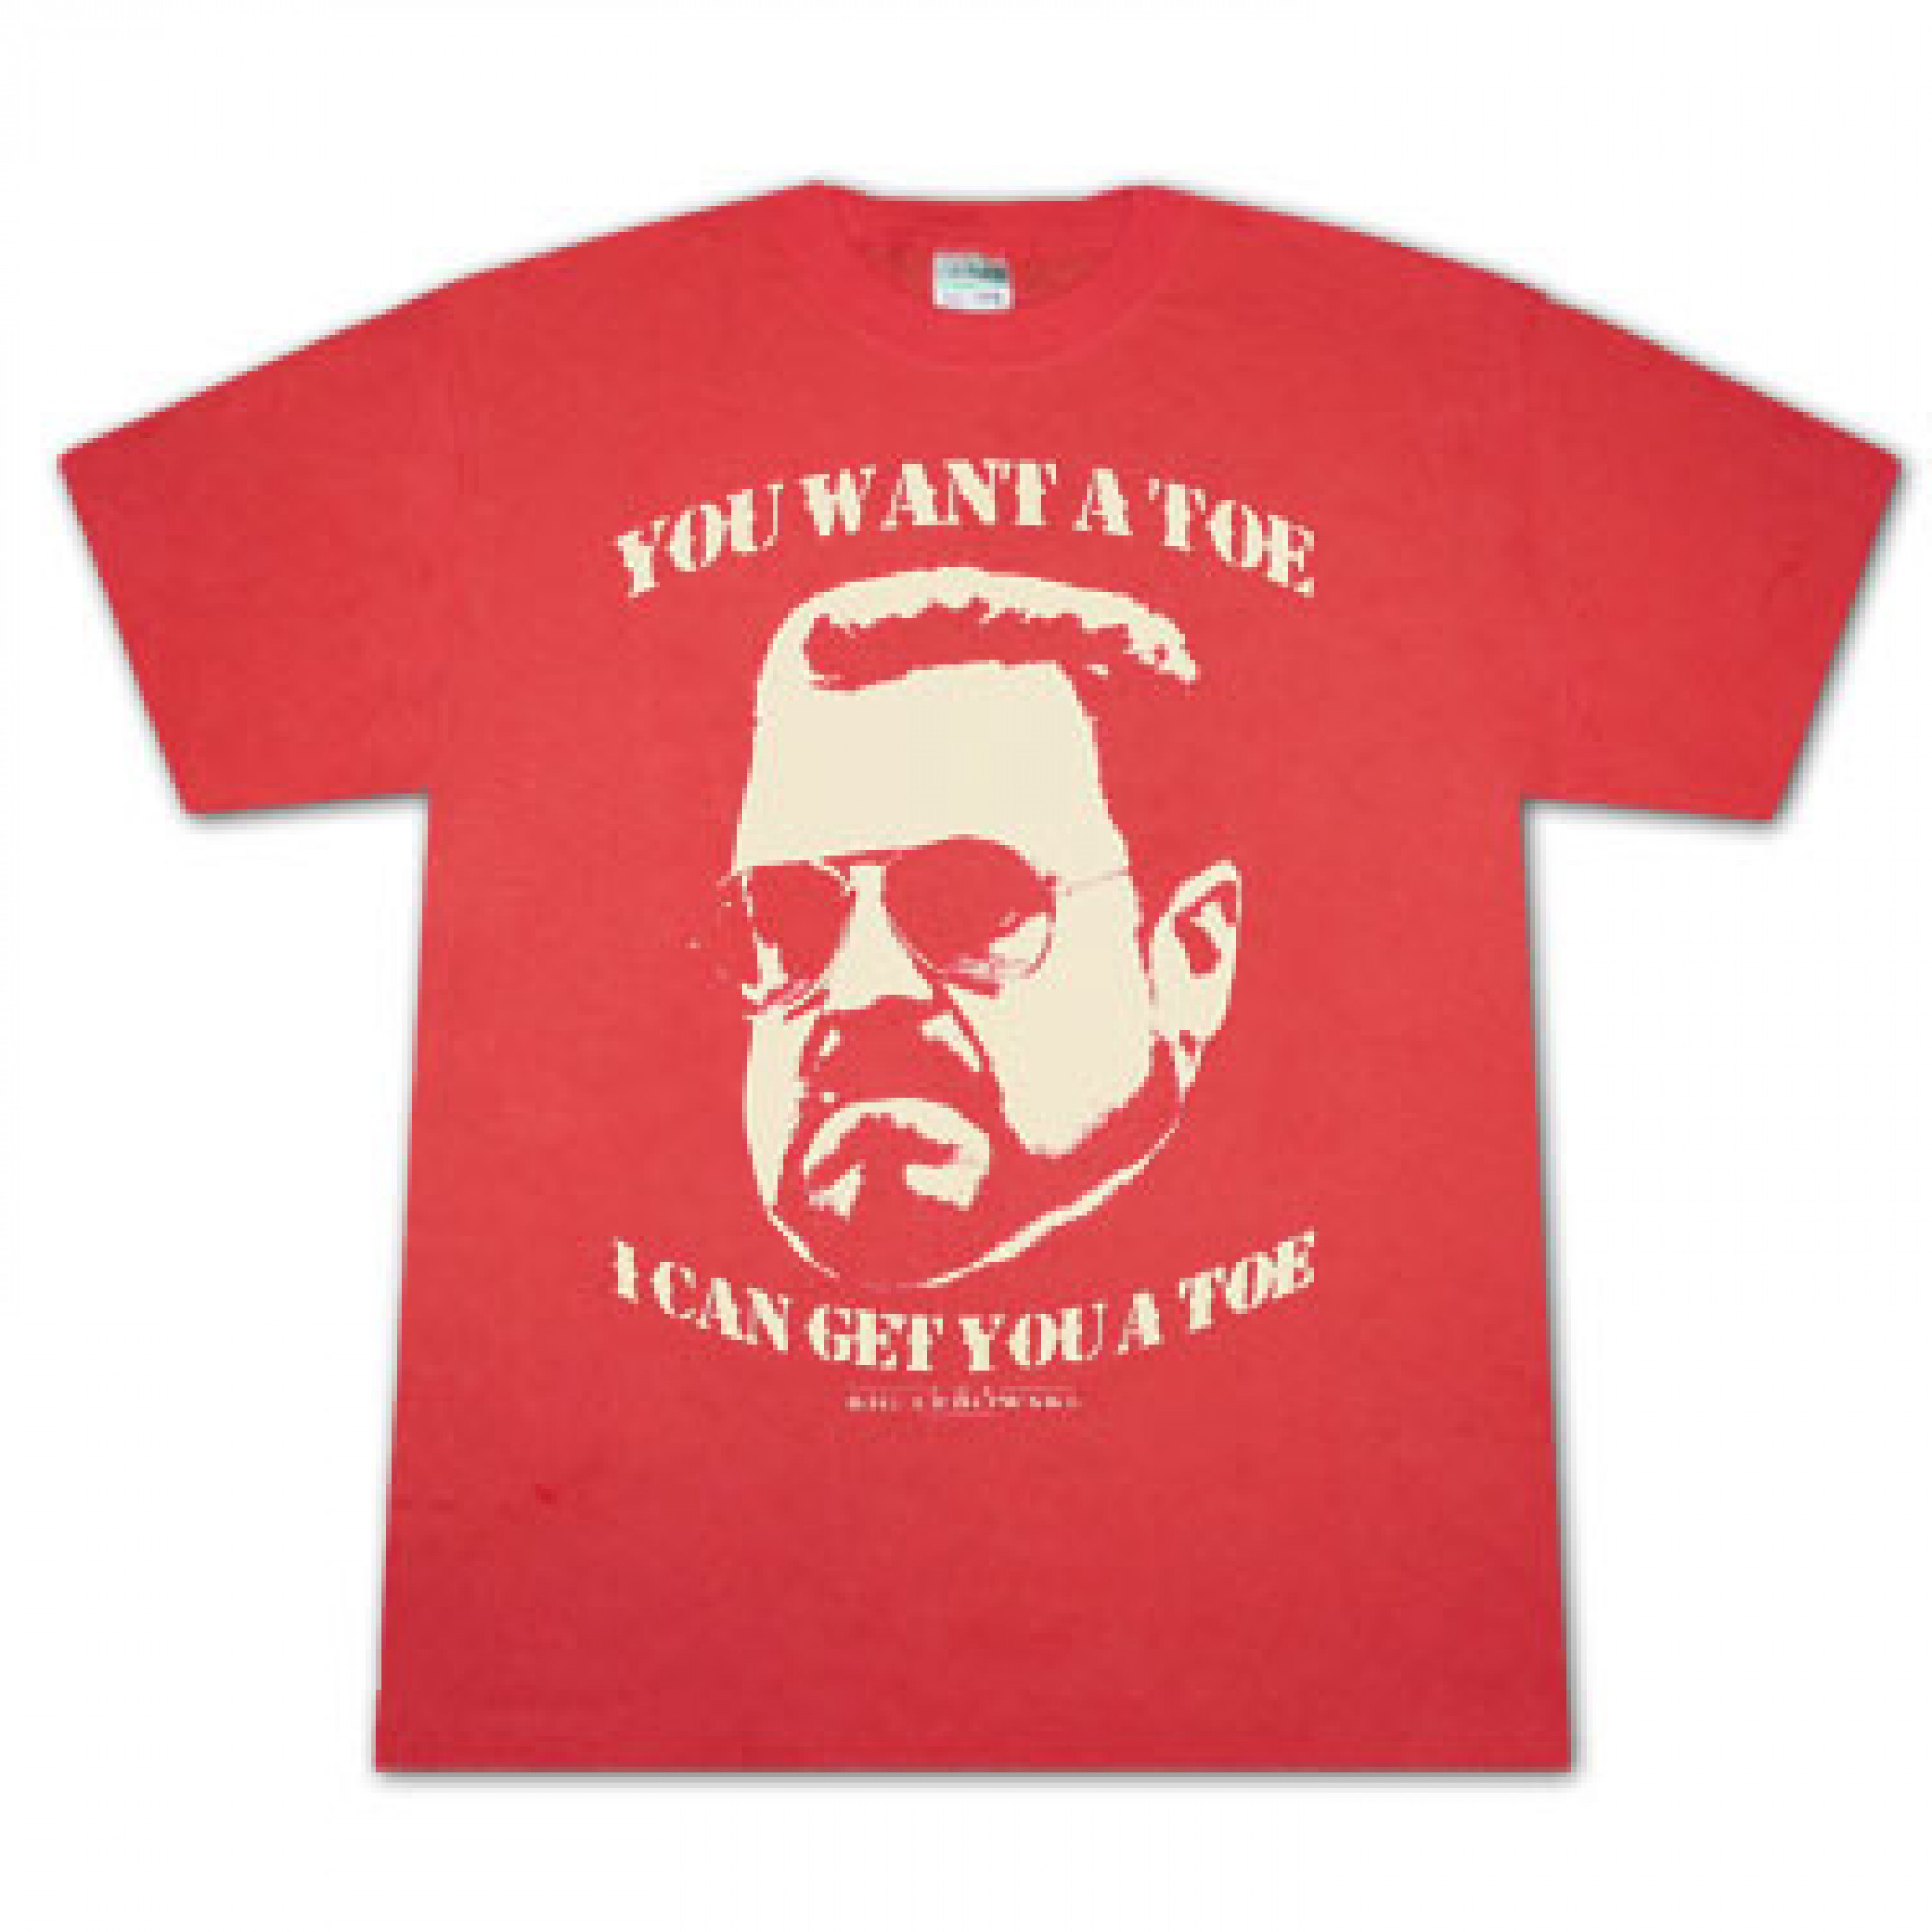 The Big Lebowski Want A Toe Red Graphic Tee Shirt